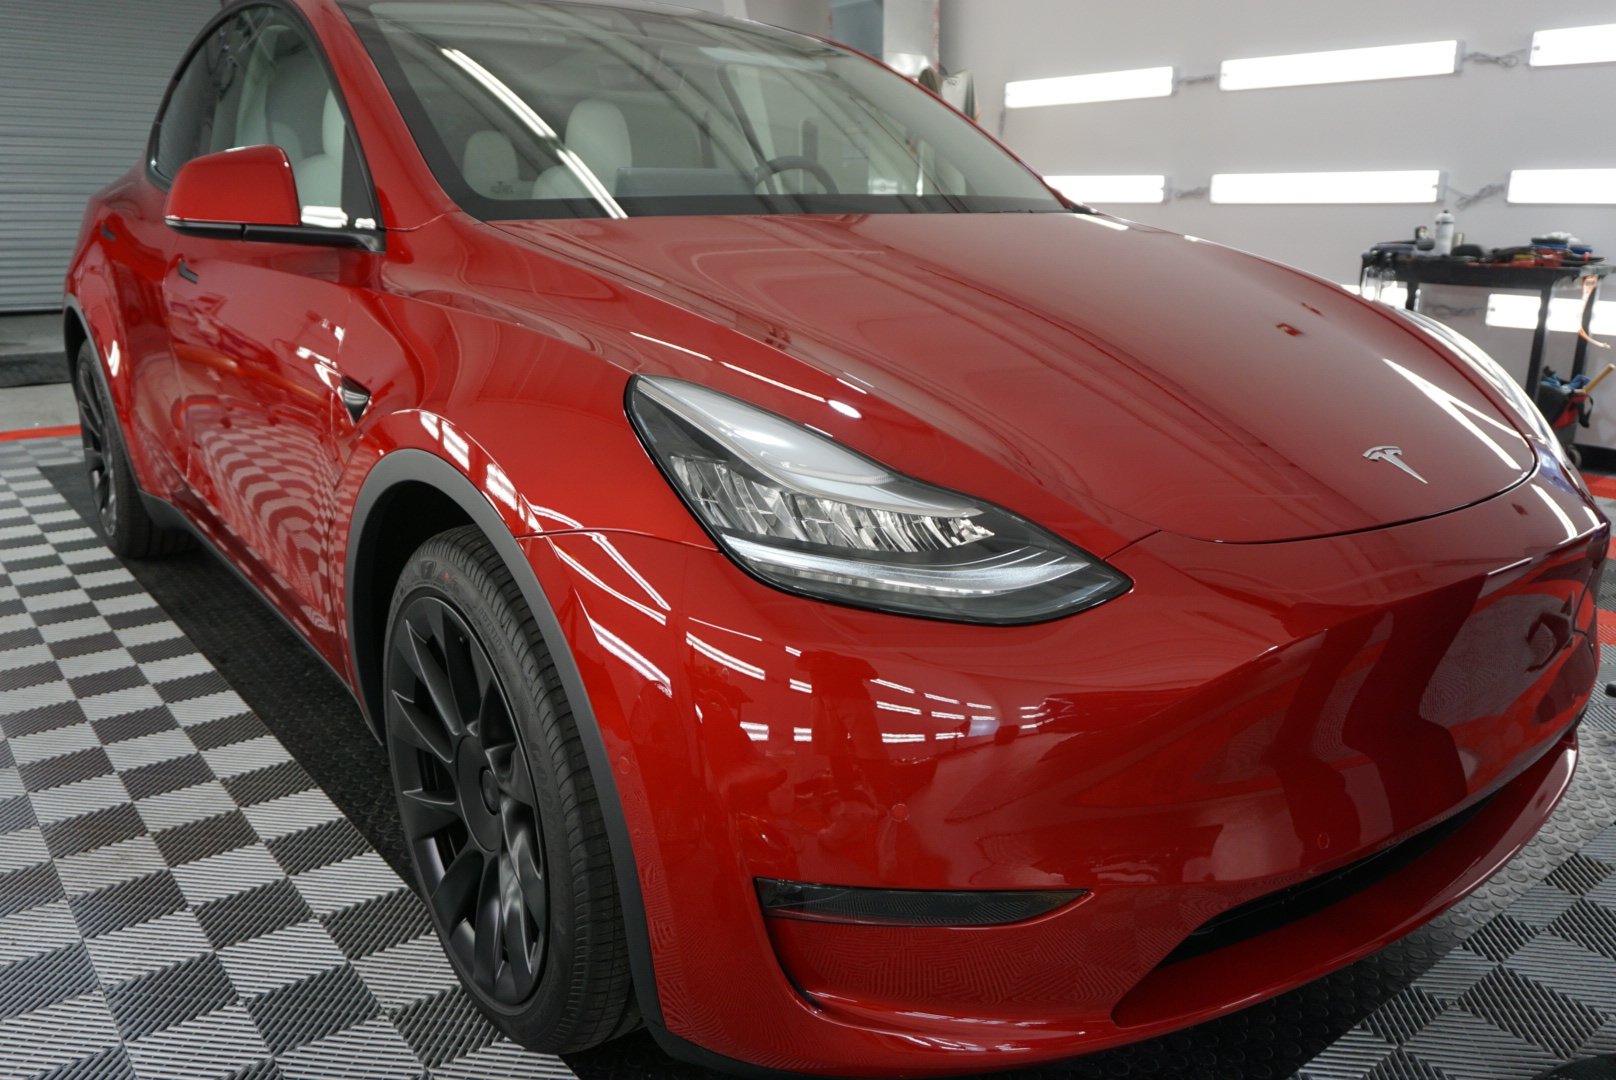 Ceramic Coating of a 2020 Tesla Model X